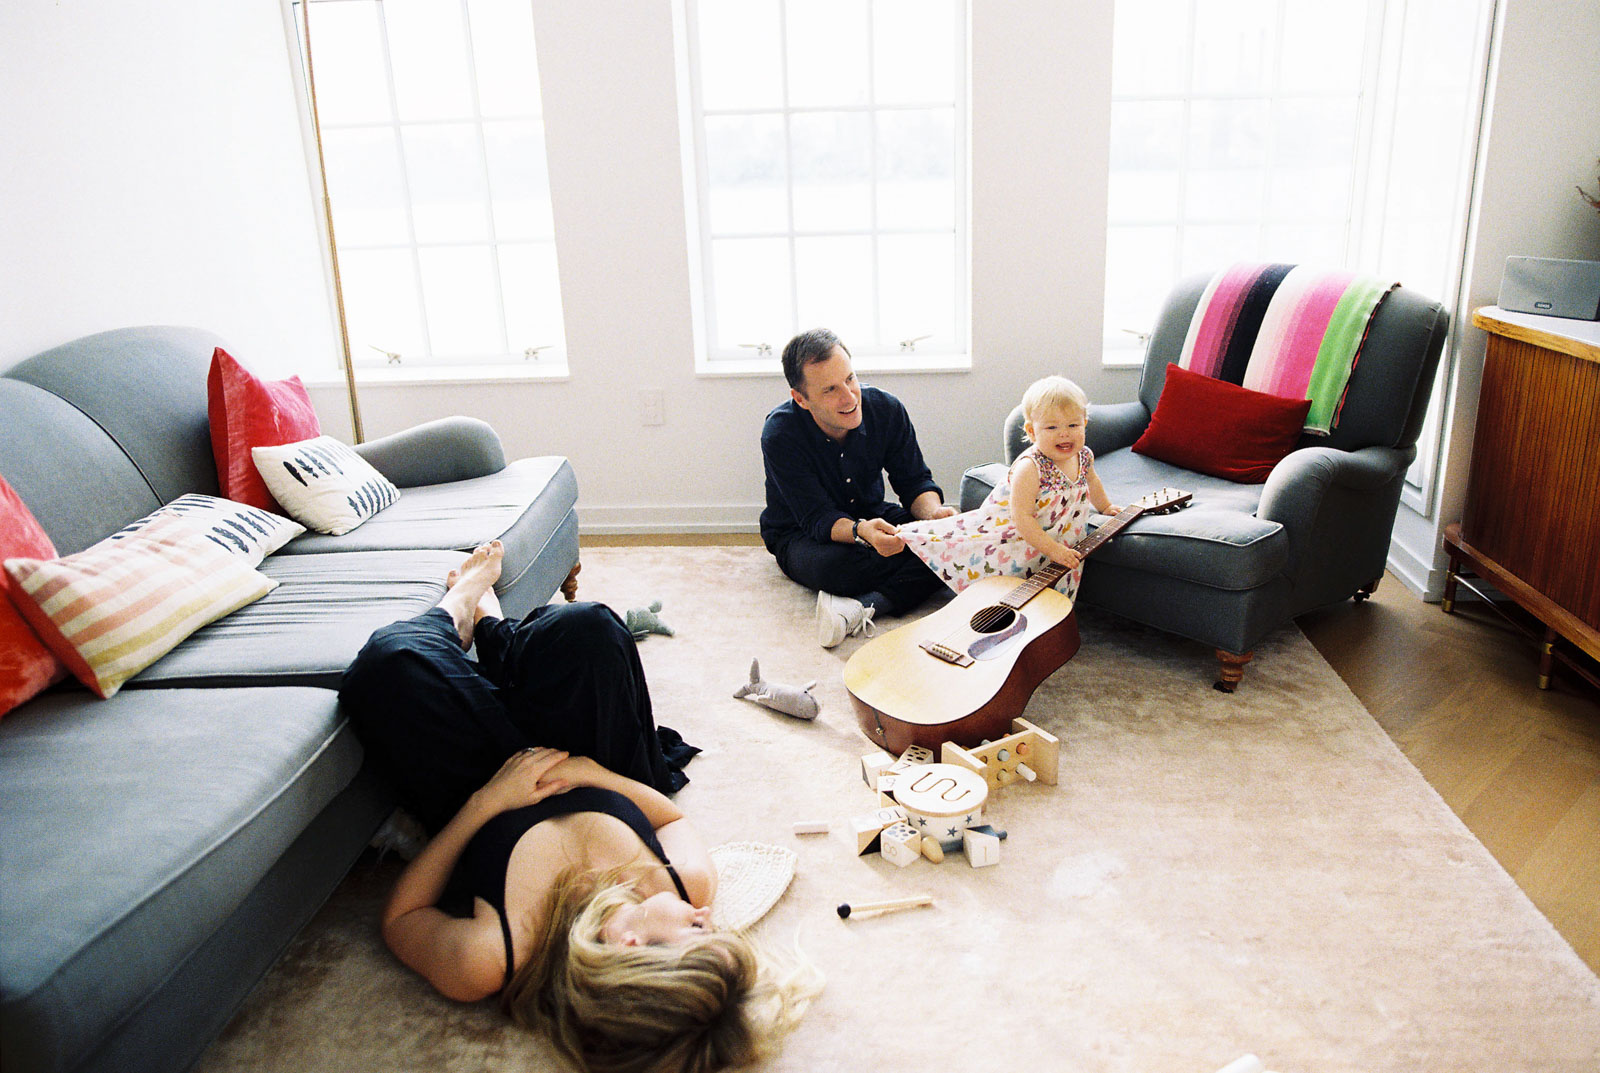 A lifestyle family photo of dream photography clients relaxing